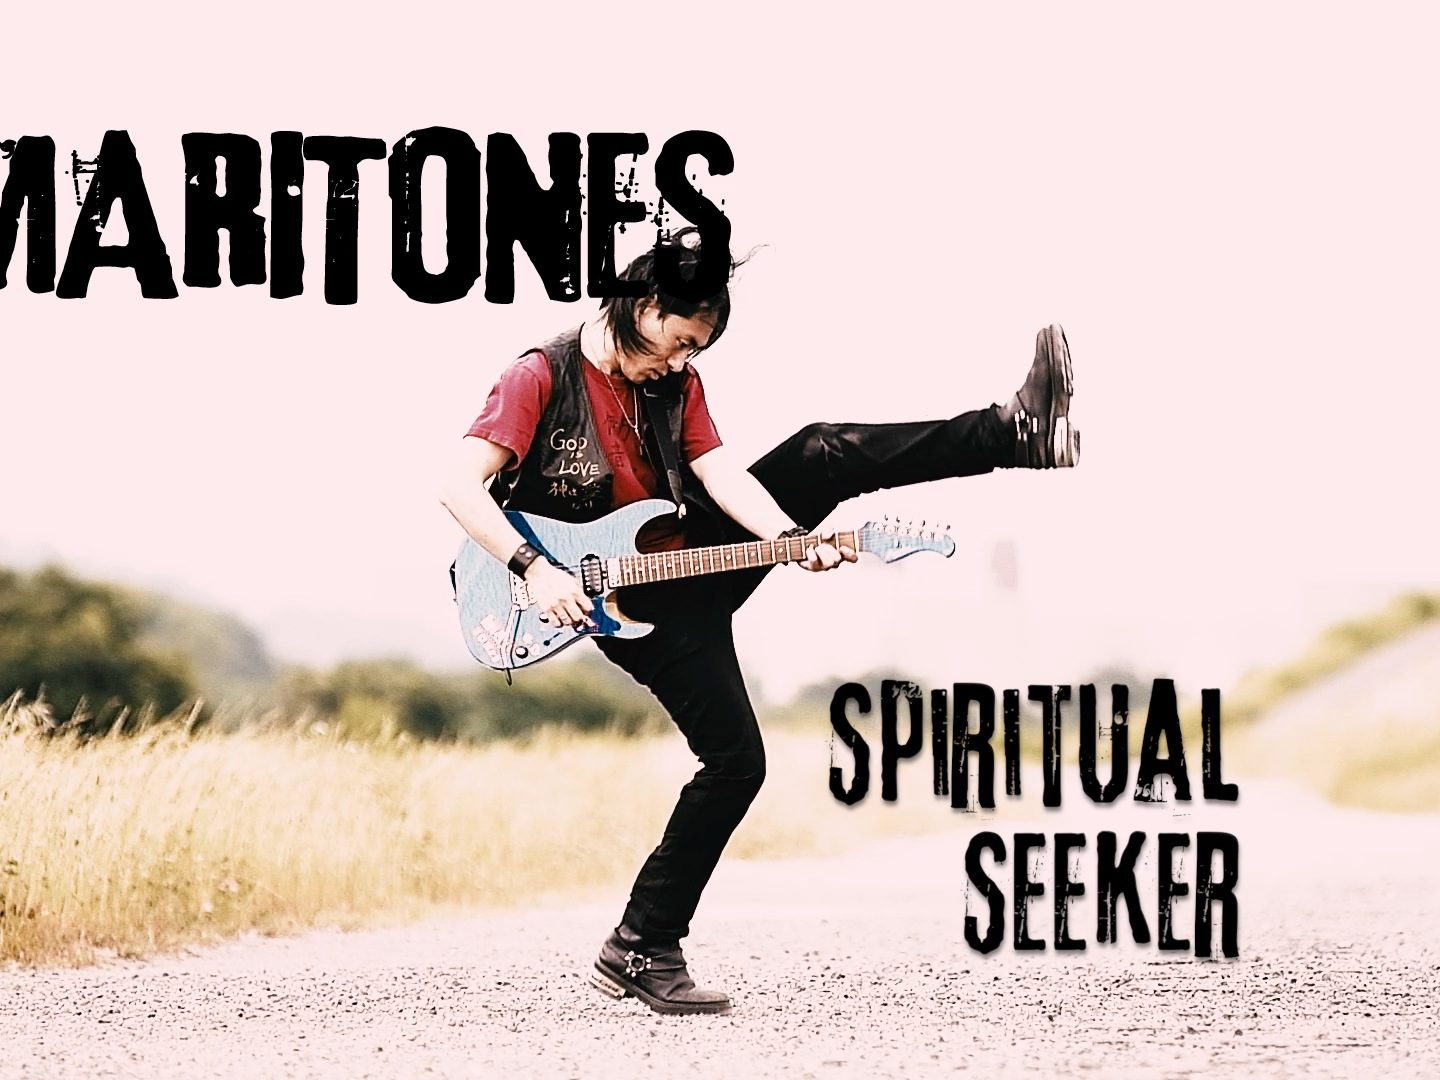 Spiritual Seeker -a Buddhist song!?